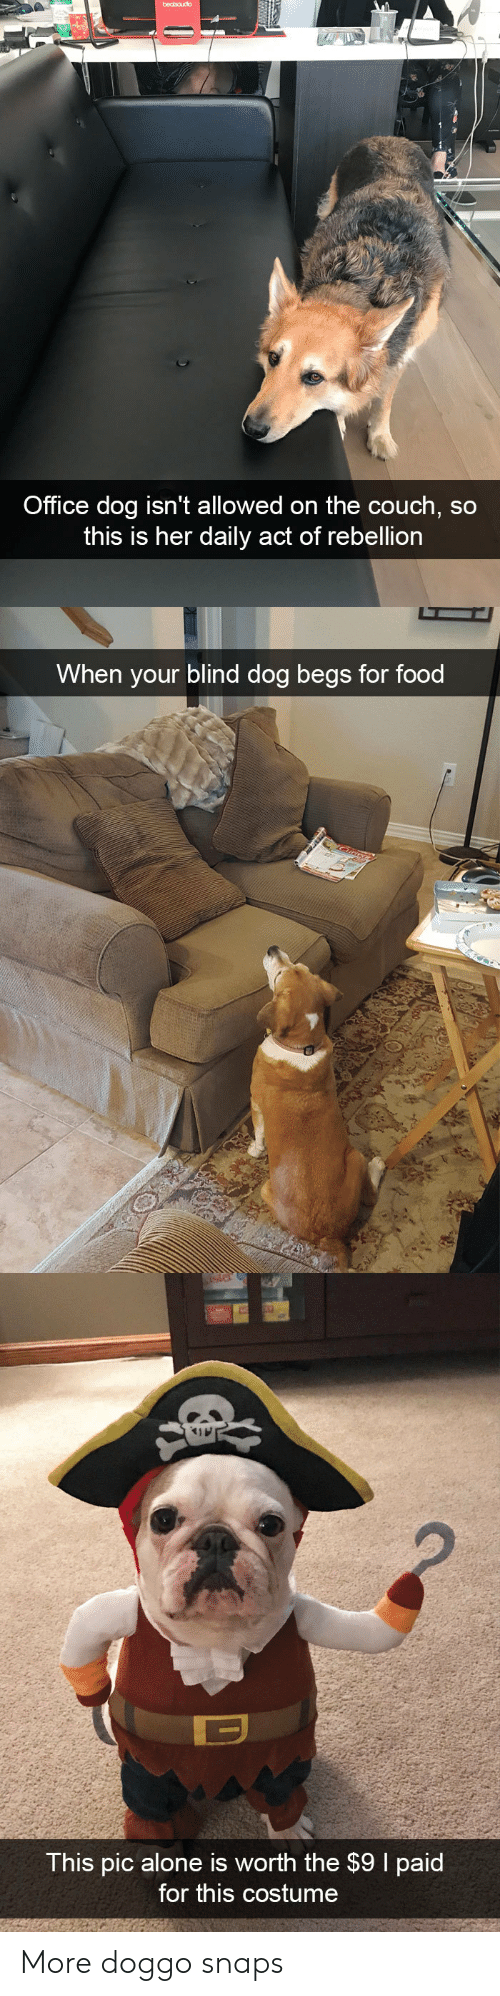 Being Alone, Food, and Couch: Office dog isn't allowed on the couch, so  this is her dally act of rebellion   When your blind dog begs for food   This pic alone is worth the $9 I paid  for this costume More doggo snaps